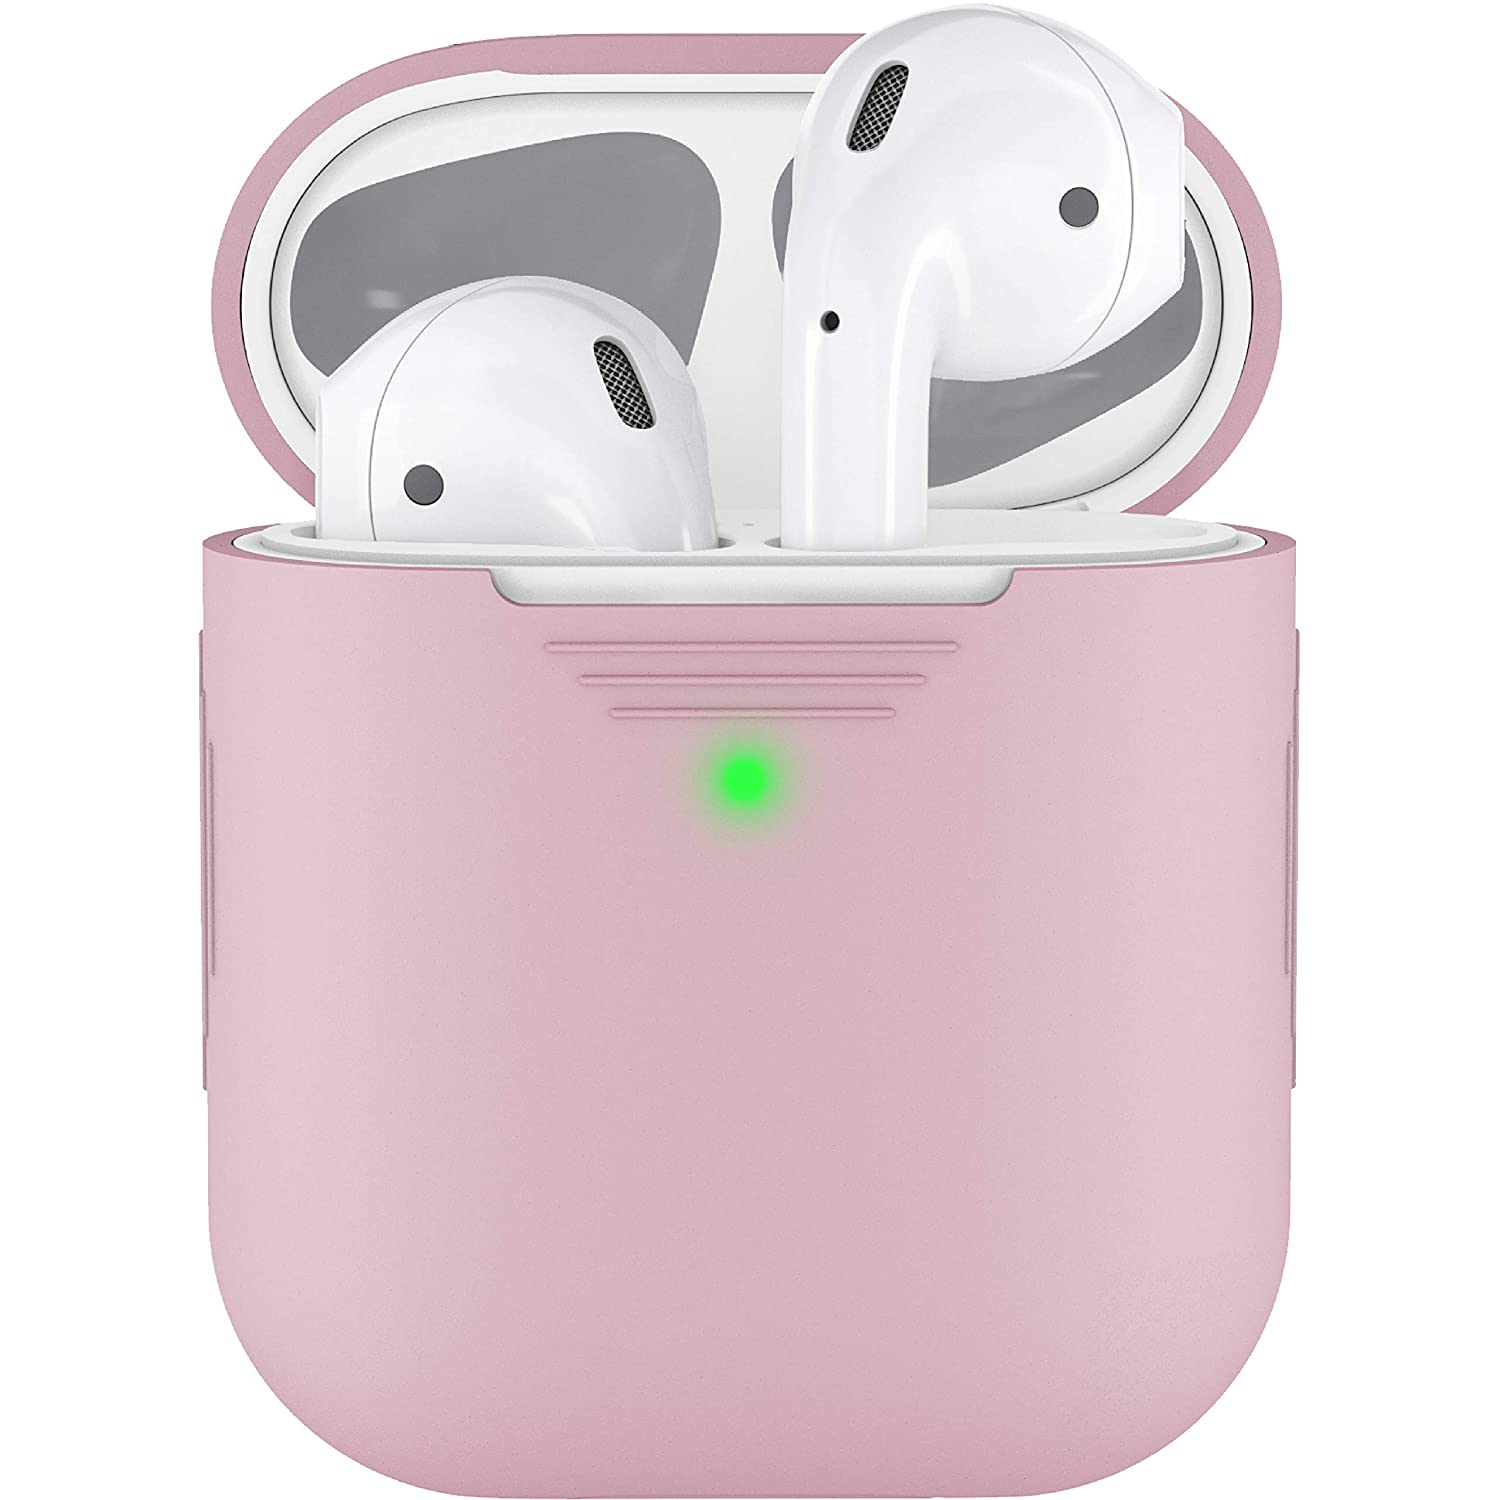 PodSkinz AirPods 2 & 1 Case [Front LED Visible] Protective Silicone Cover and Skin Compatible with Apple AirPods (Without Carabiner, Pretty in Pink)